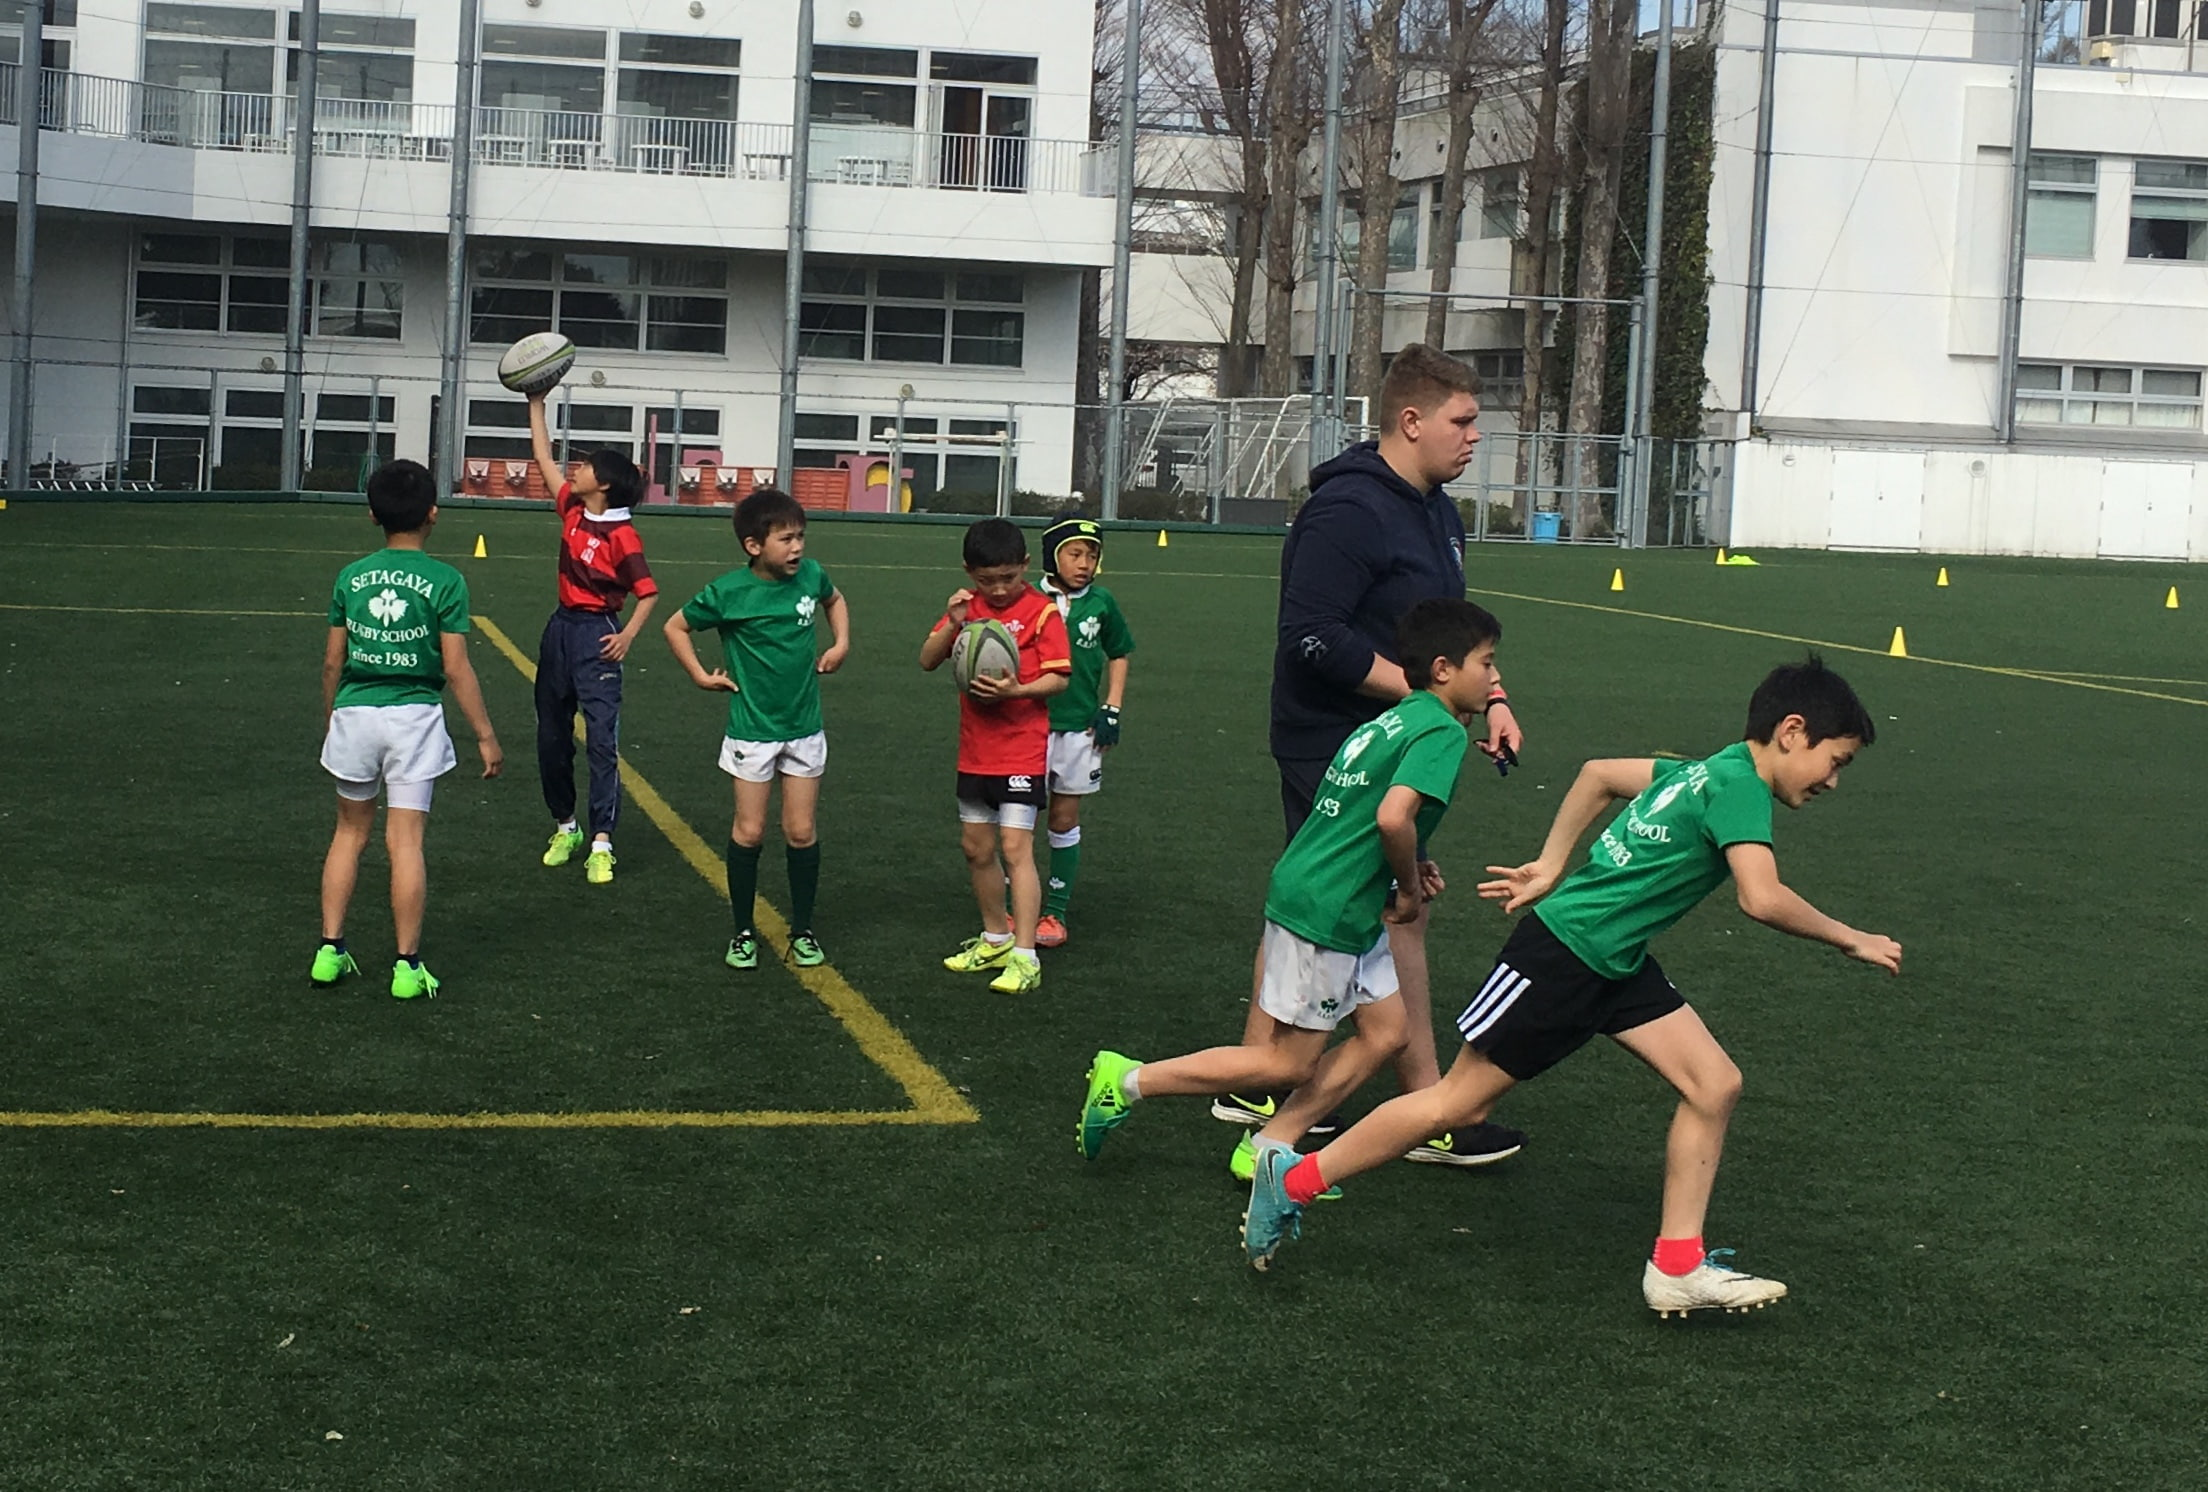 Elementary Boys Participating in a Rugby Clinic